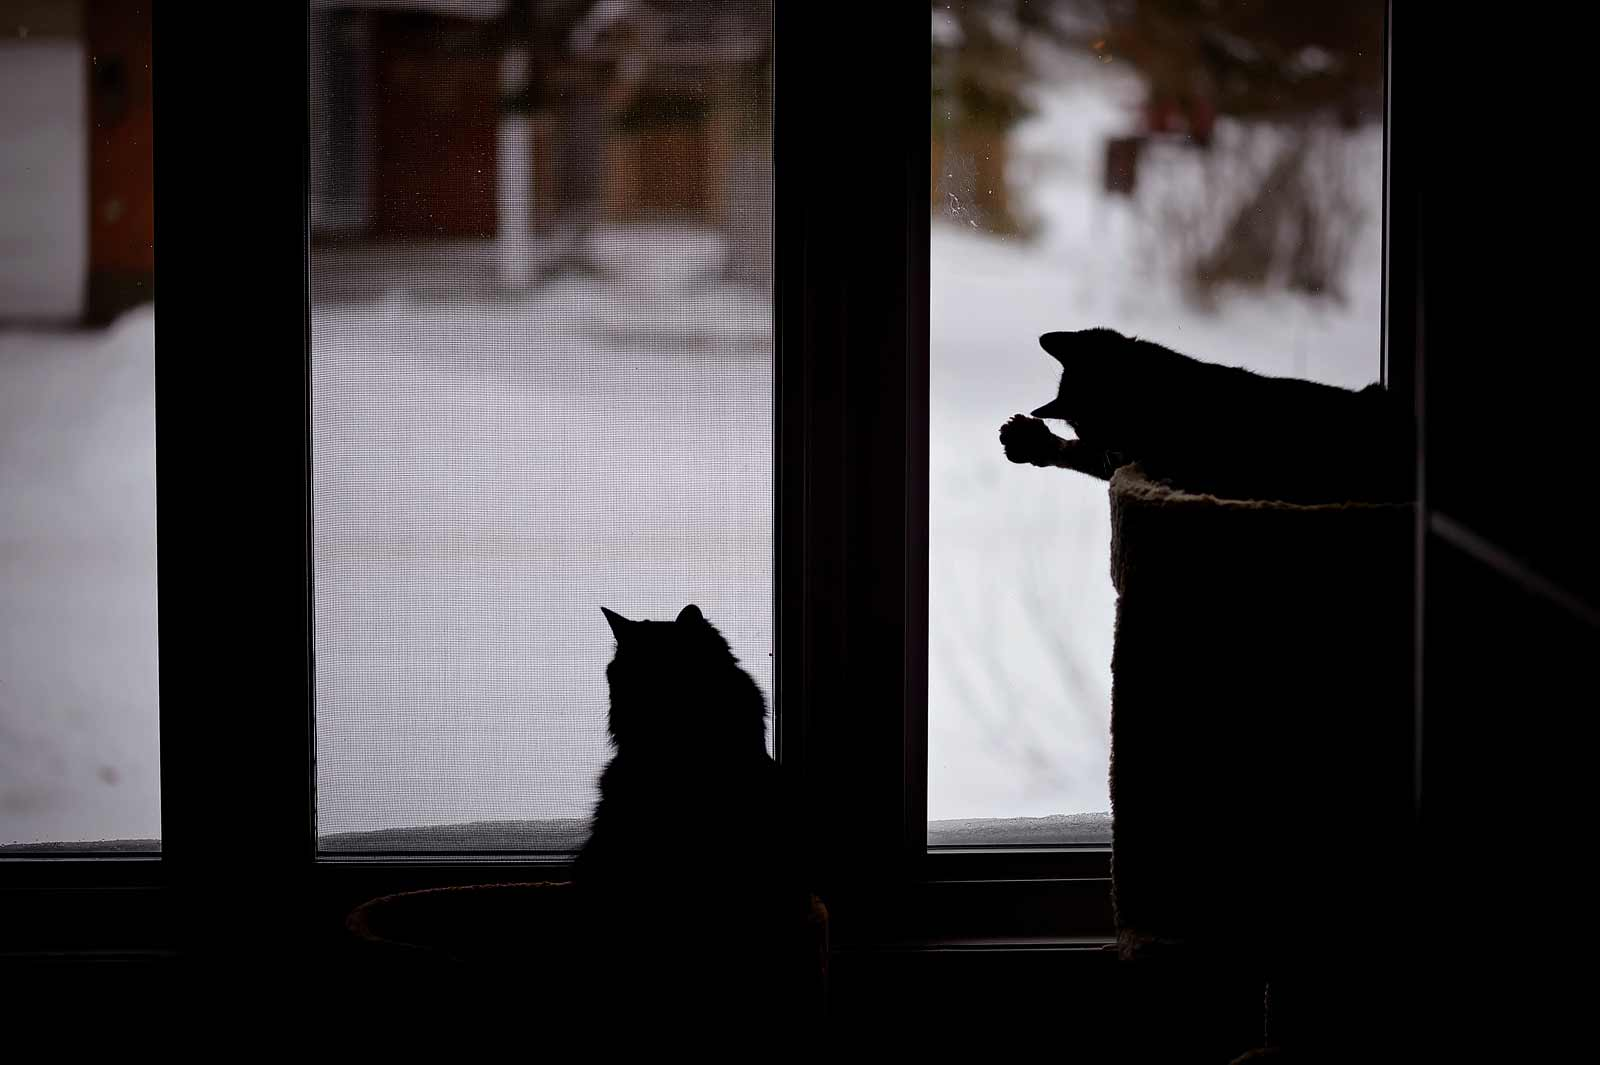 Two cats watching from the window on a snowy day